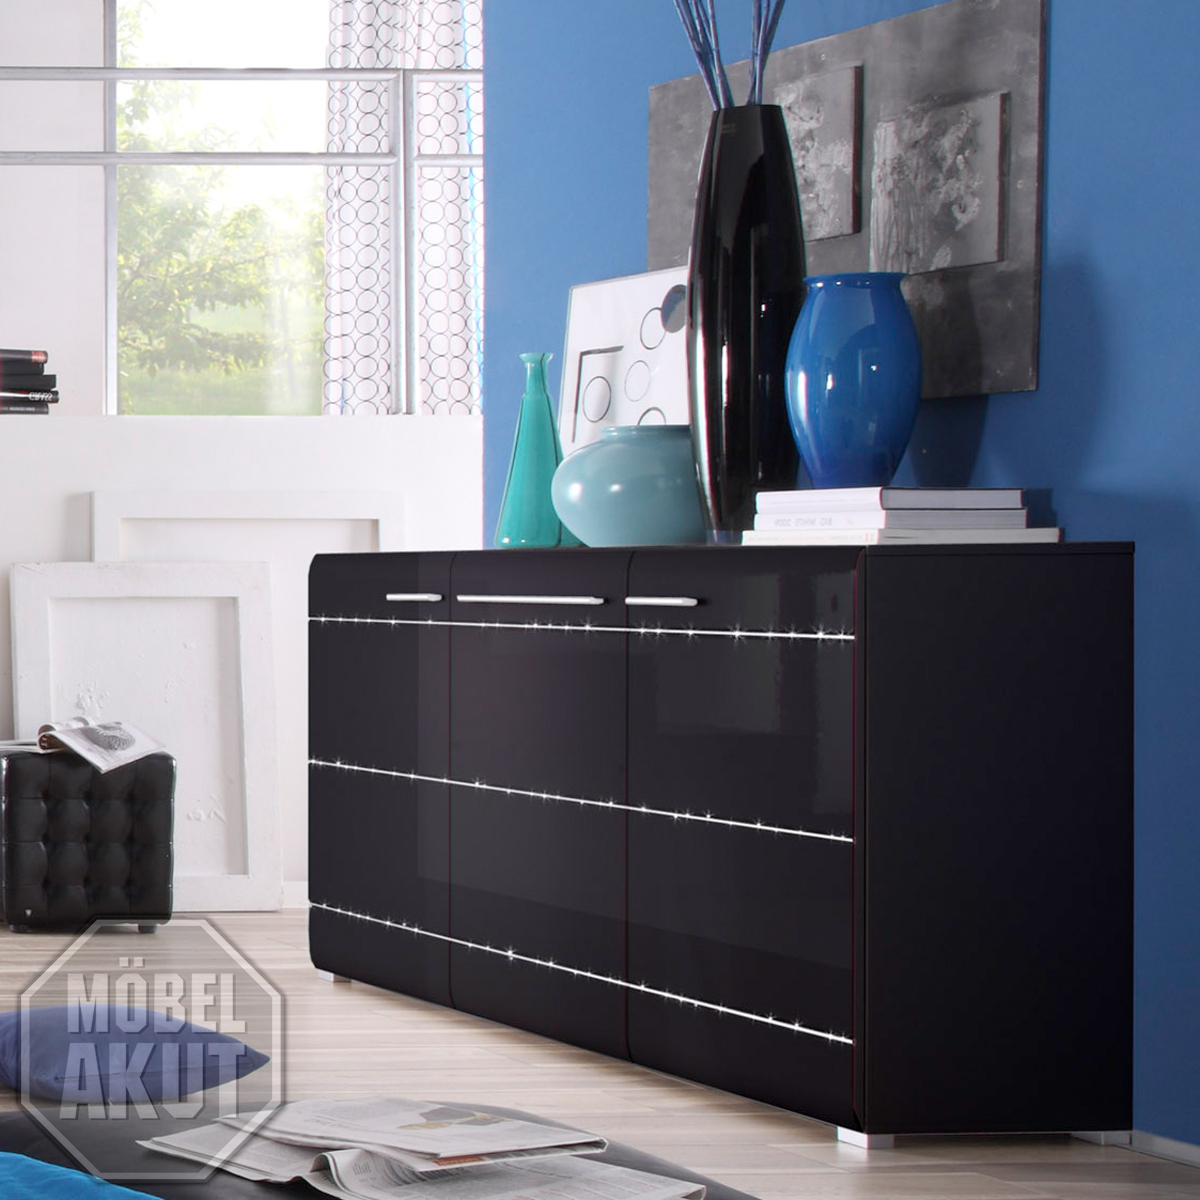 sideboard ramor kommode in schwarz hochglanz tiefzieh inkl strass ebay. Black Bedroom Furniture Sets. Home Design Ideas